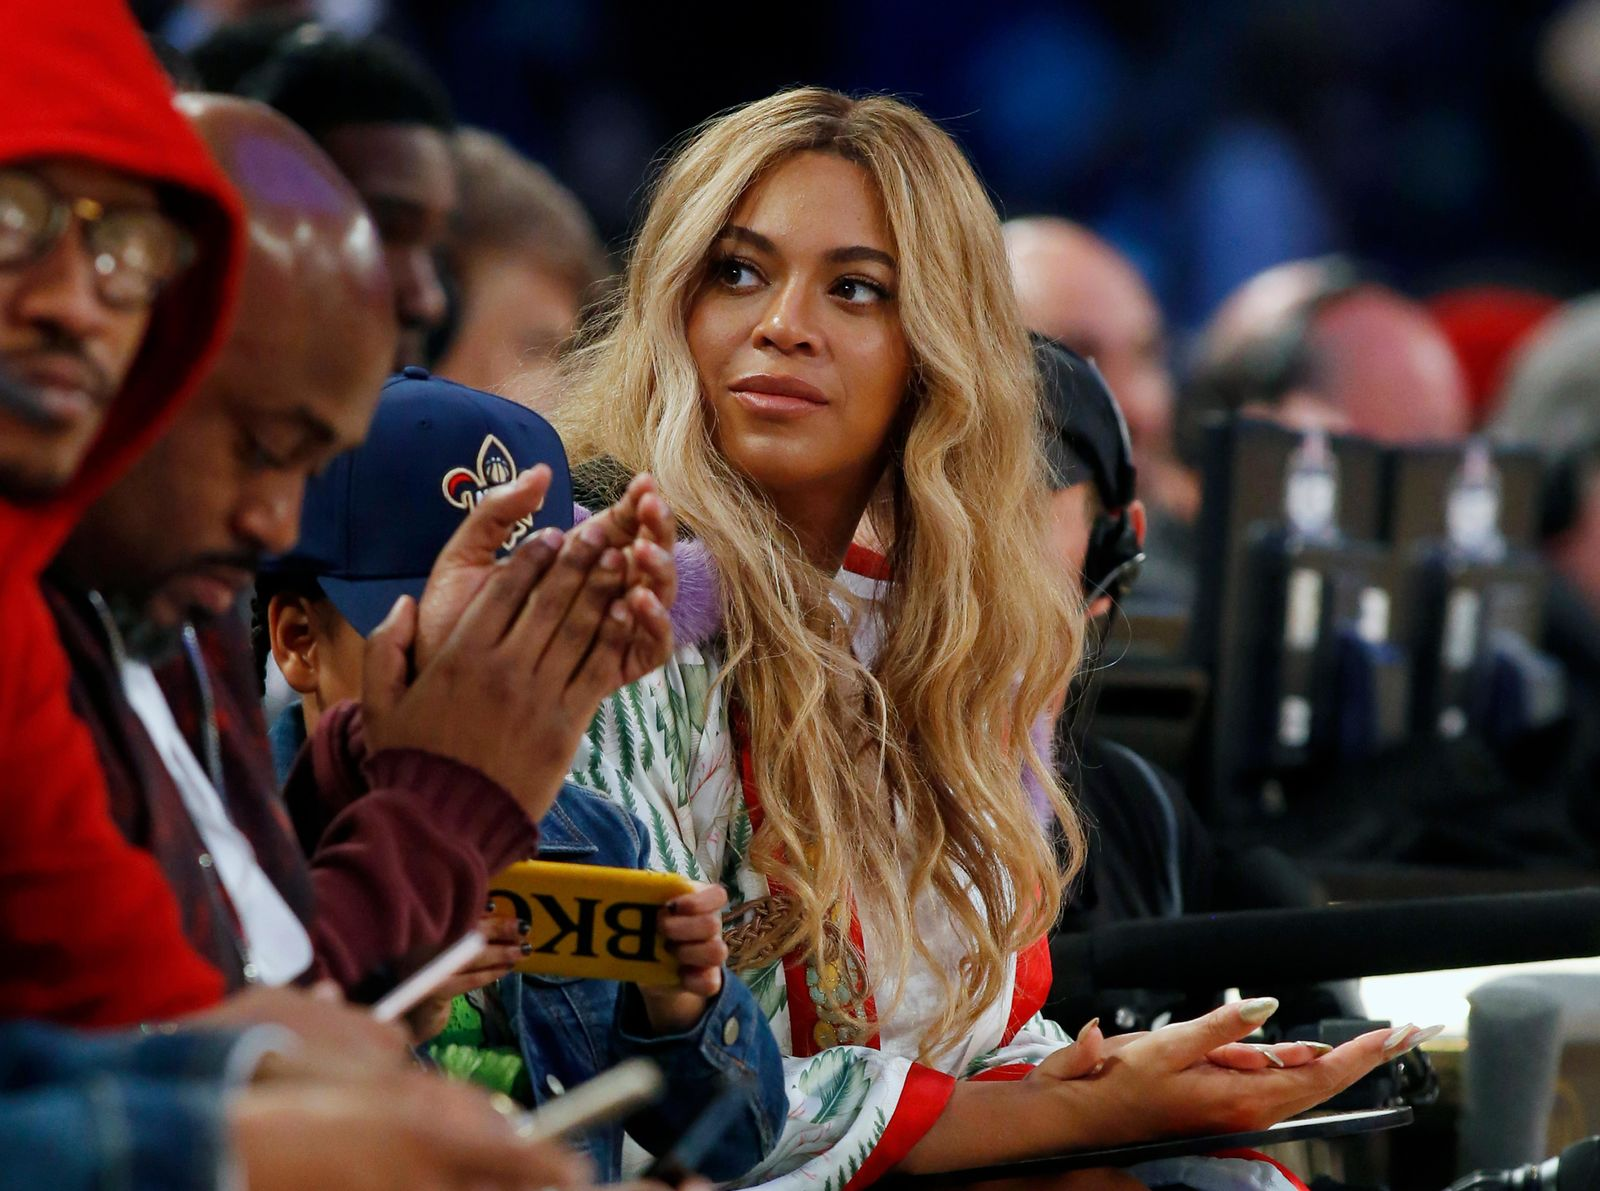 FILE - In this Feb. 19, 2017. file photo, Beyonce sits at court side during the second half of the NBA All-Star basketball game in New Orleans. (AP Photo/Max Becherer, File)